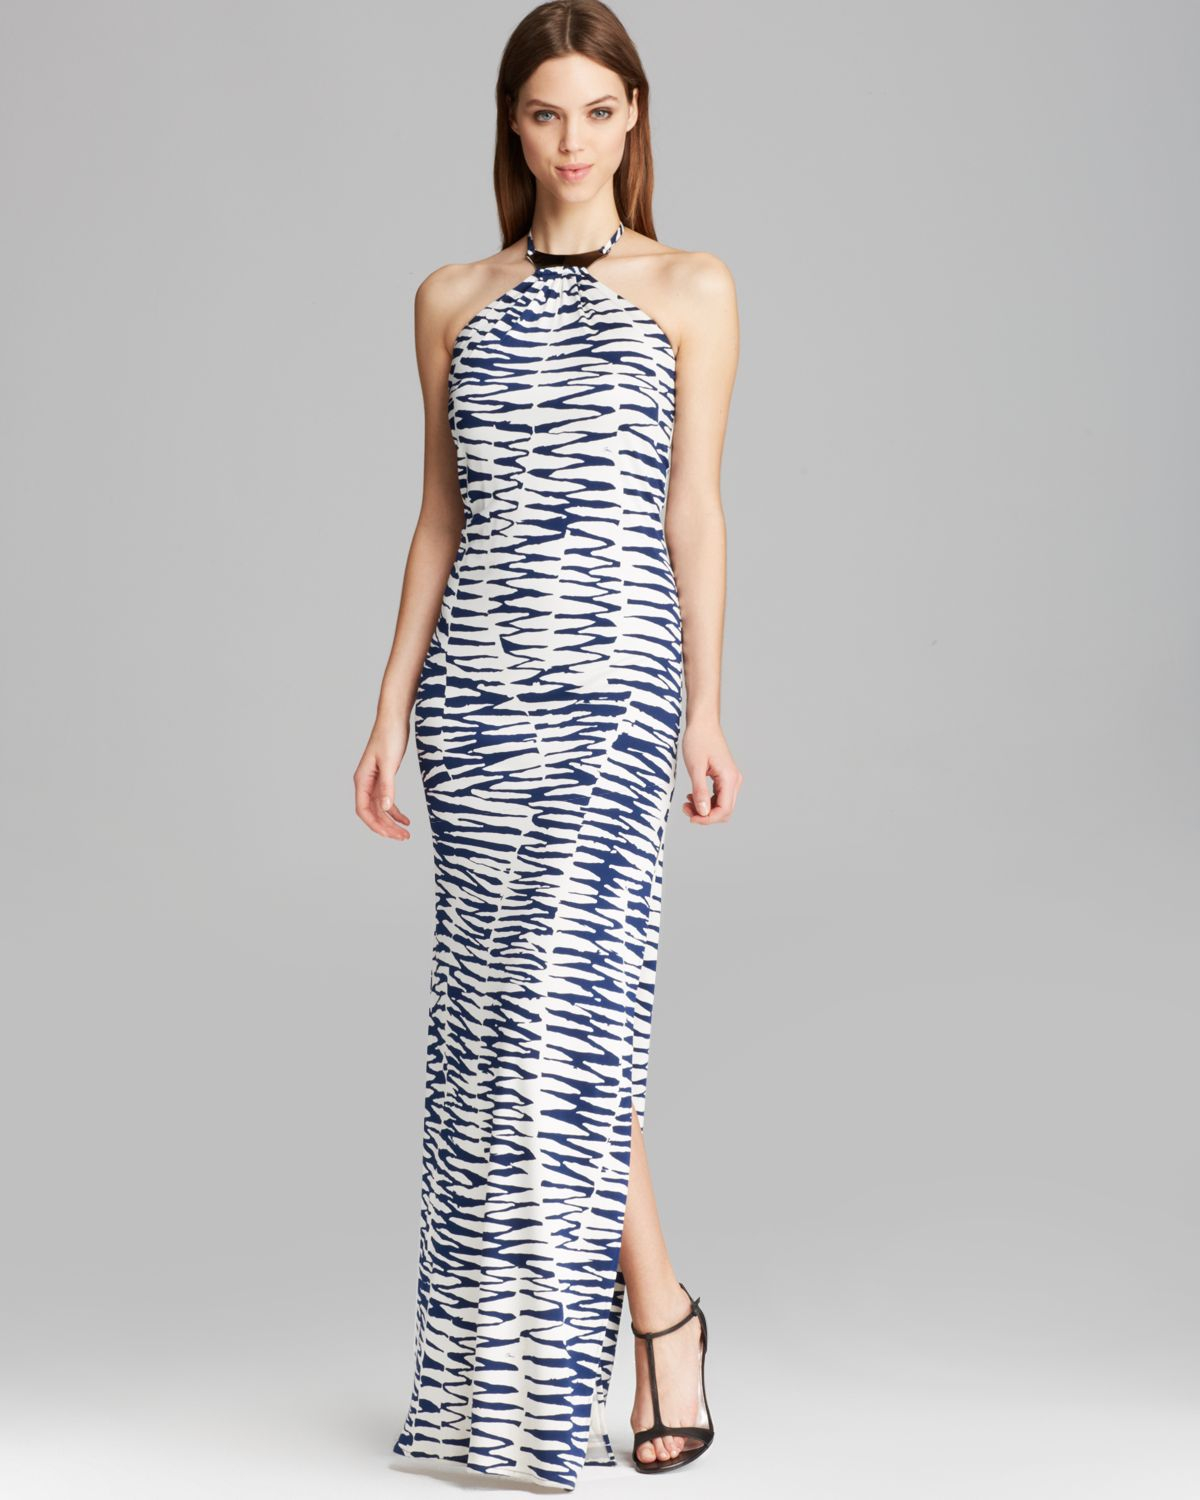 b7c86b72e99 Trina Turk Maxi Dress - Lane High Neck Zebra Jersey in Blue - Lyst